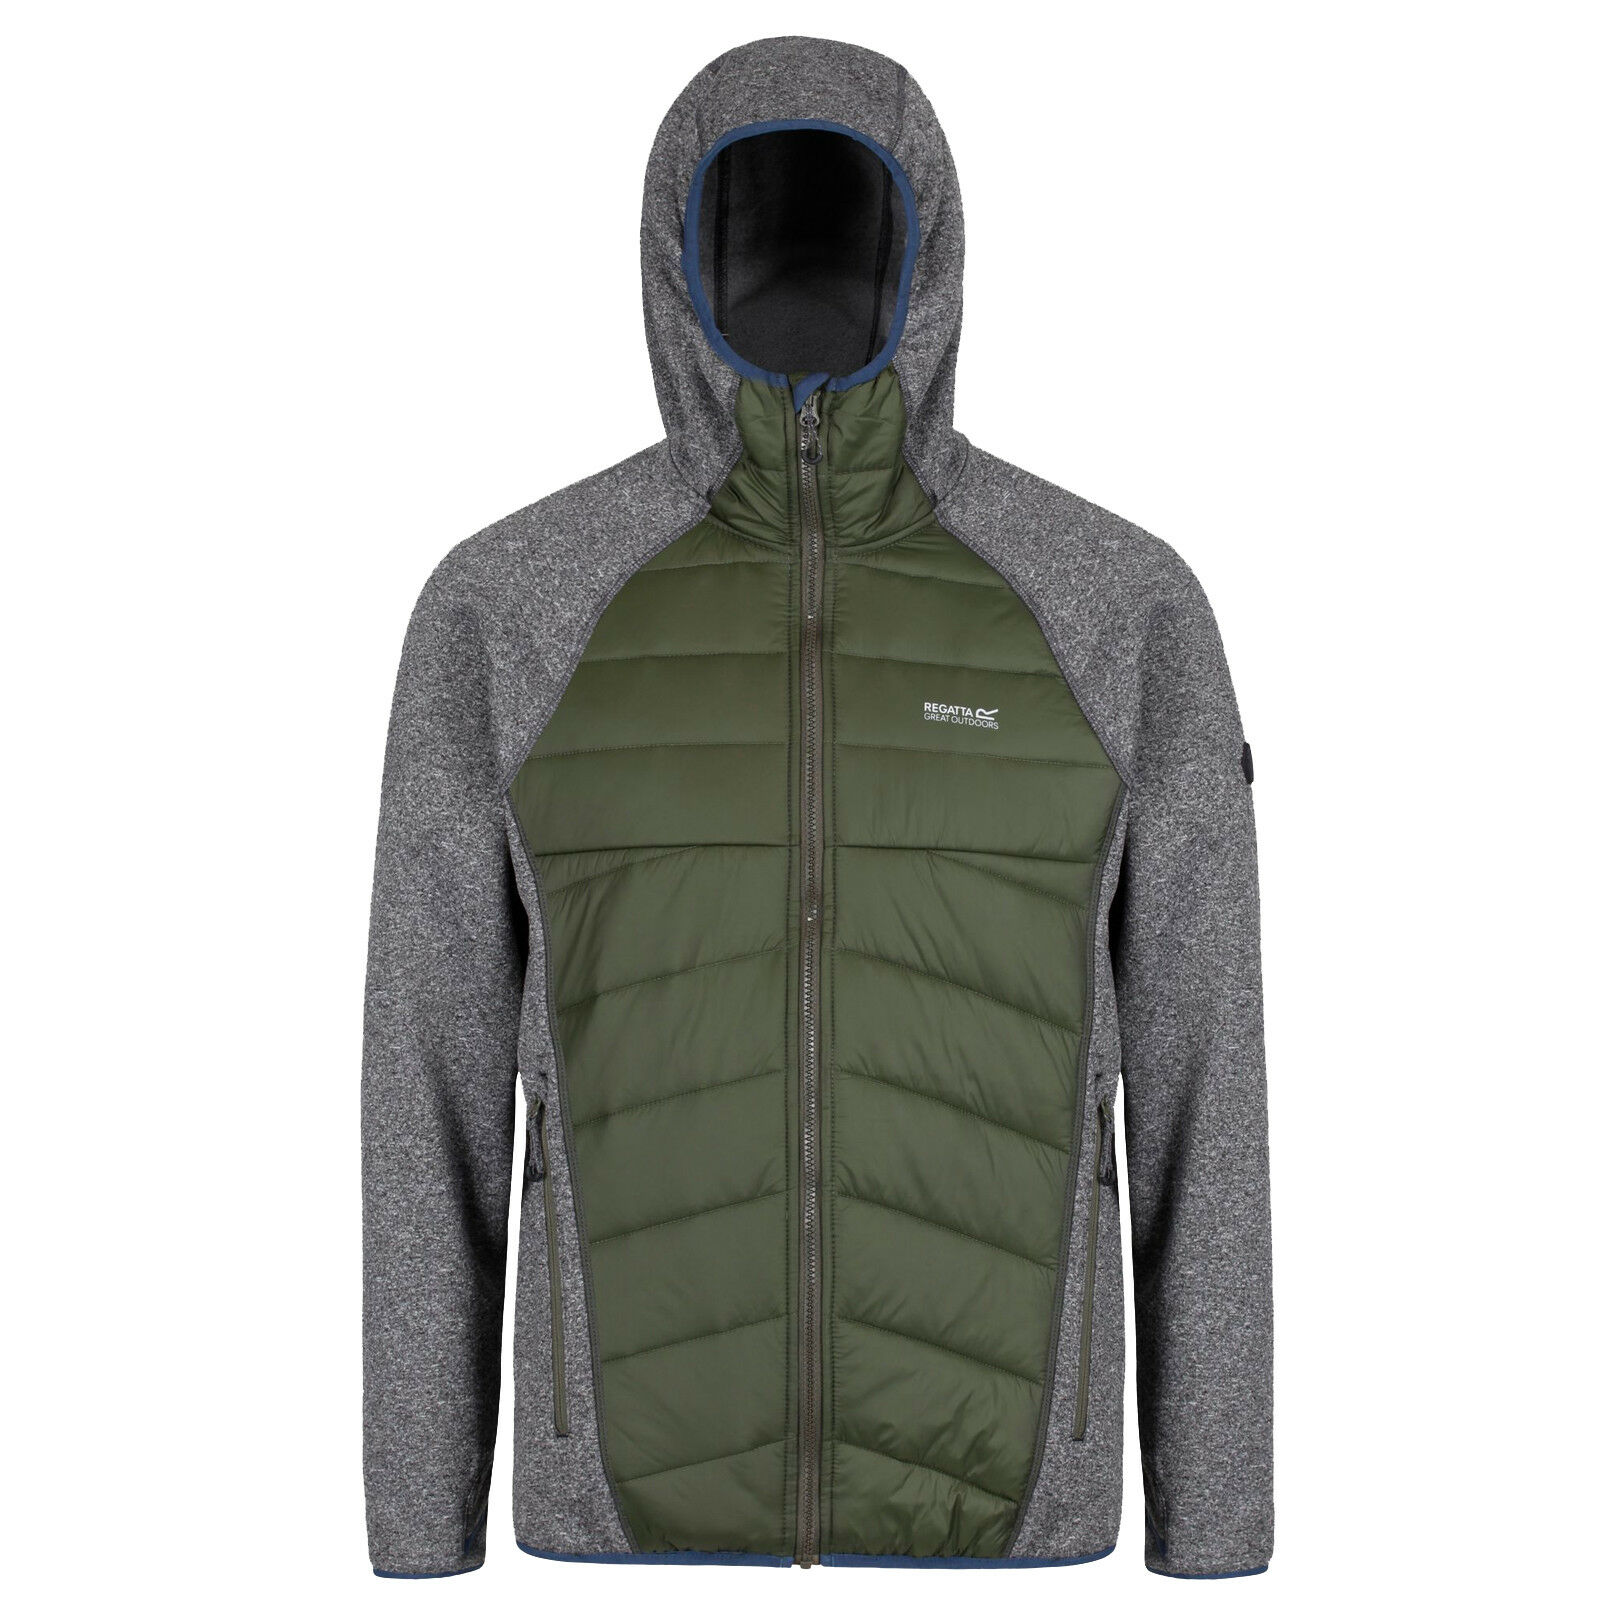 Andreson III Hybrid Stretch Jacket Lightweight Insulated Water Repellent New